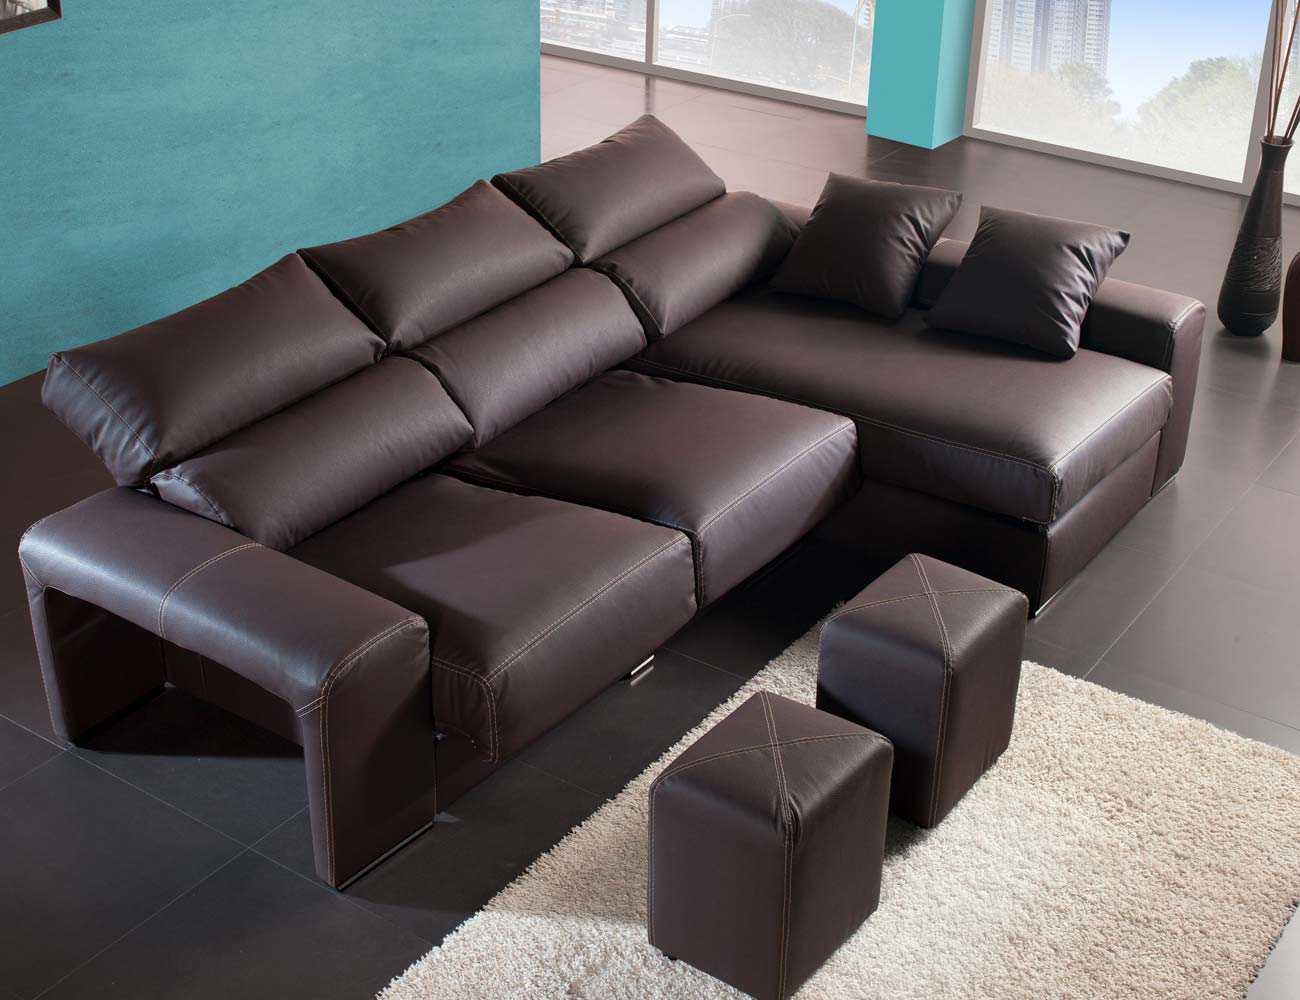 Sofa chaiselongue moderno polipiel chocolate poufs taburetes27